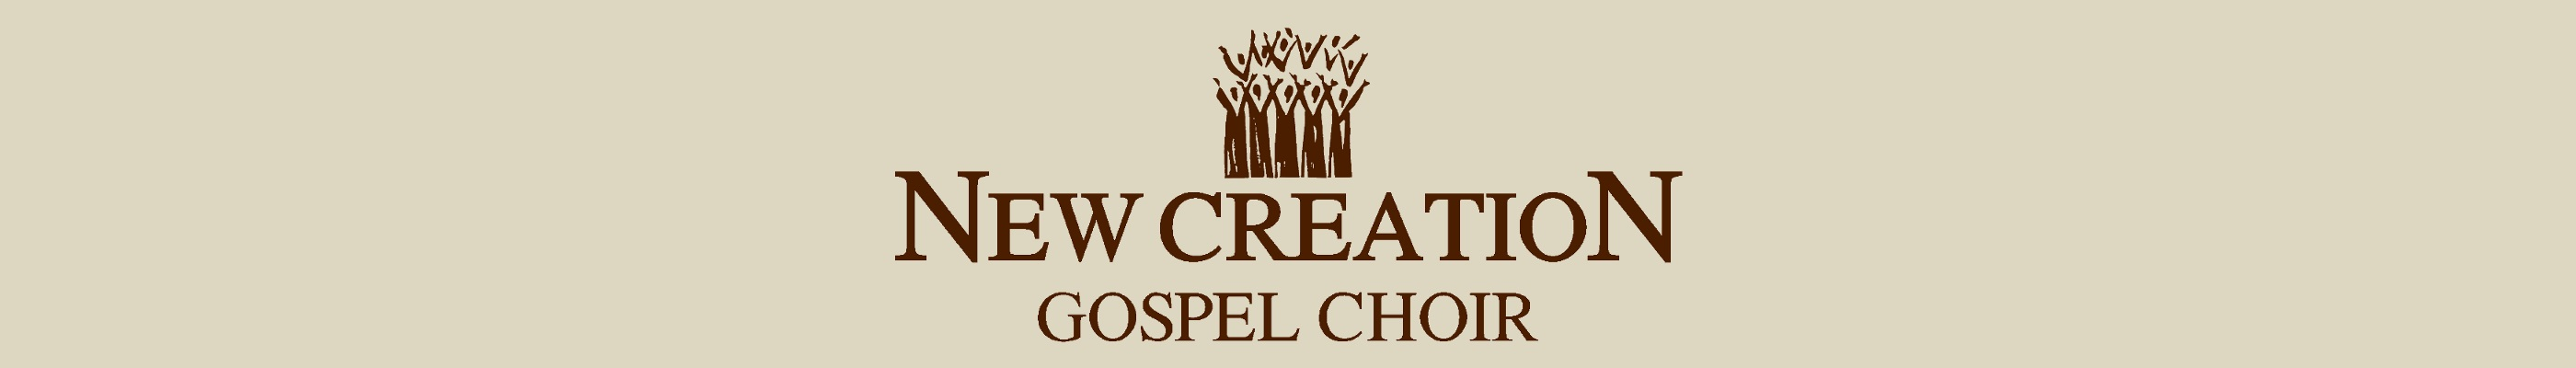 New Creation Gospel Choir